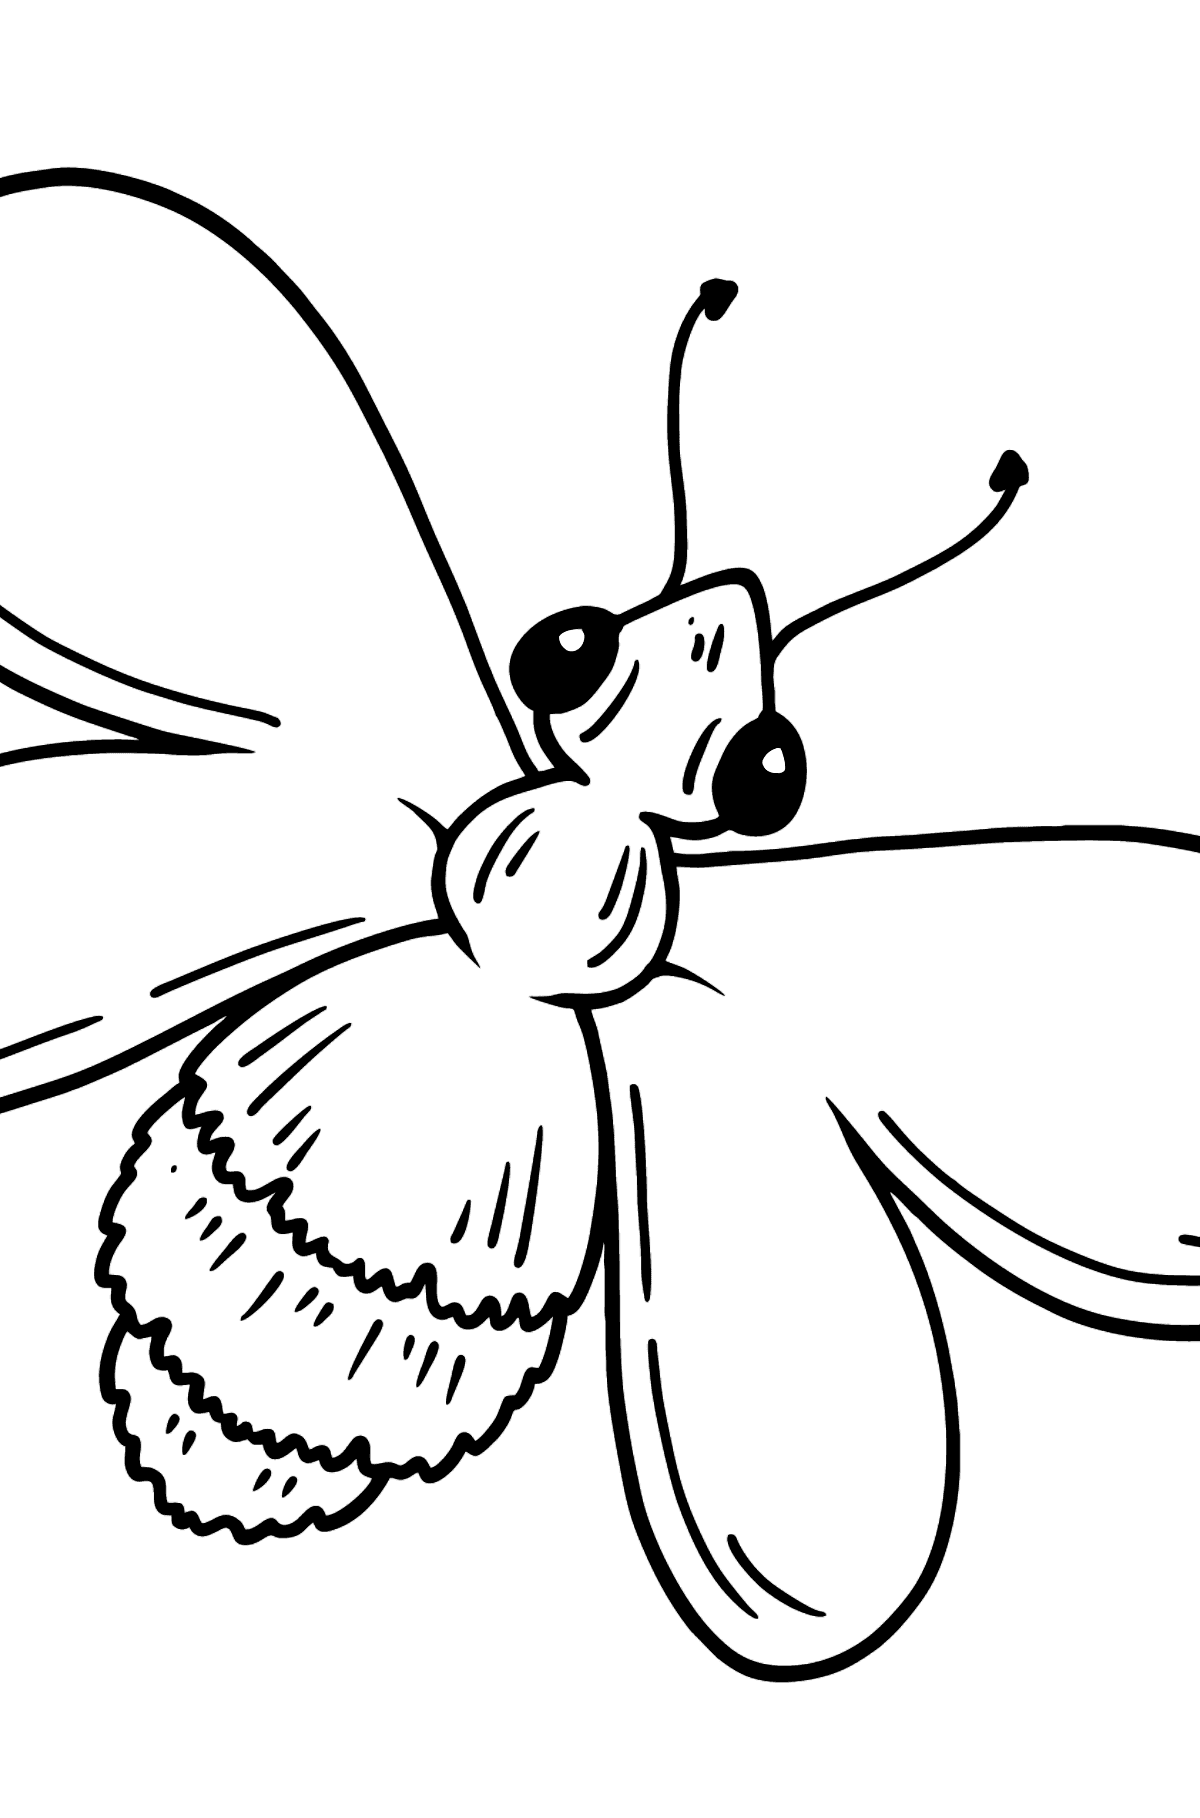 Bee coloring page - Coloring Pages for Kids